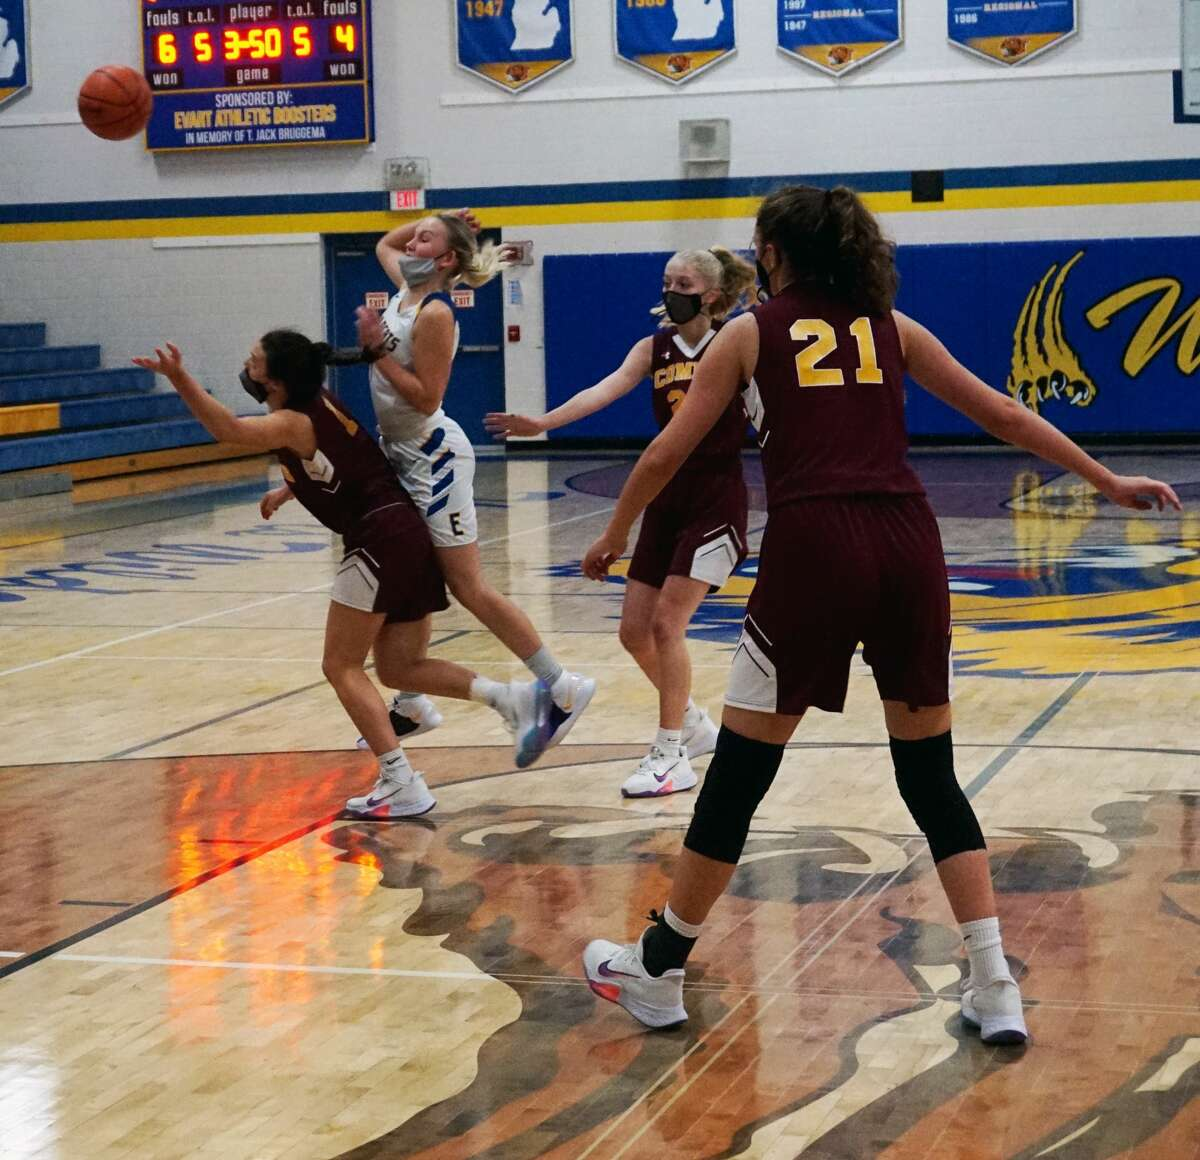 The Evart girls' basketball team was defeated by McBain Northern Michigan Christian to open the 2021 season on Wednesday evening.